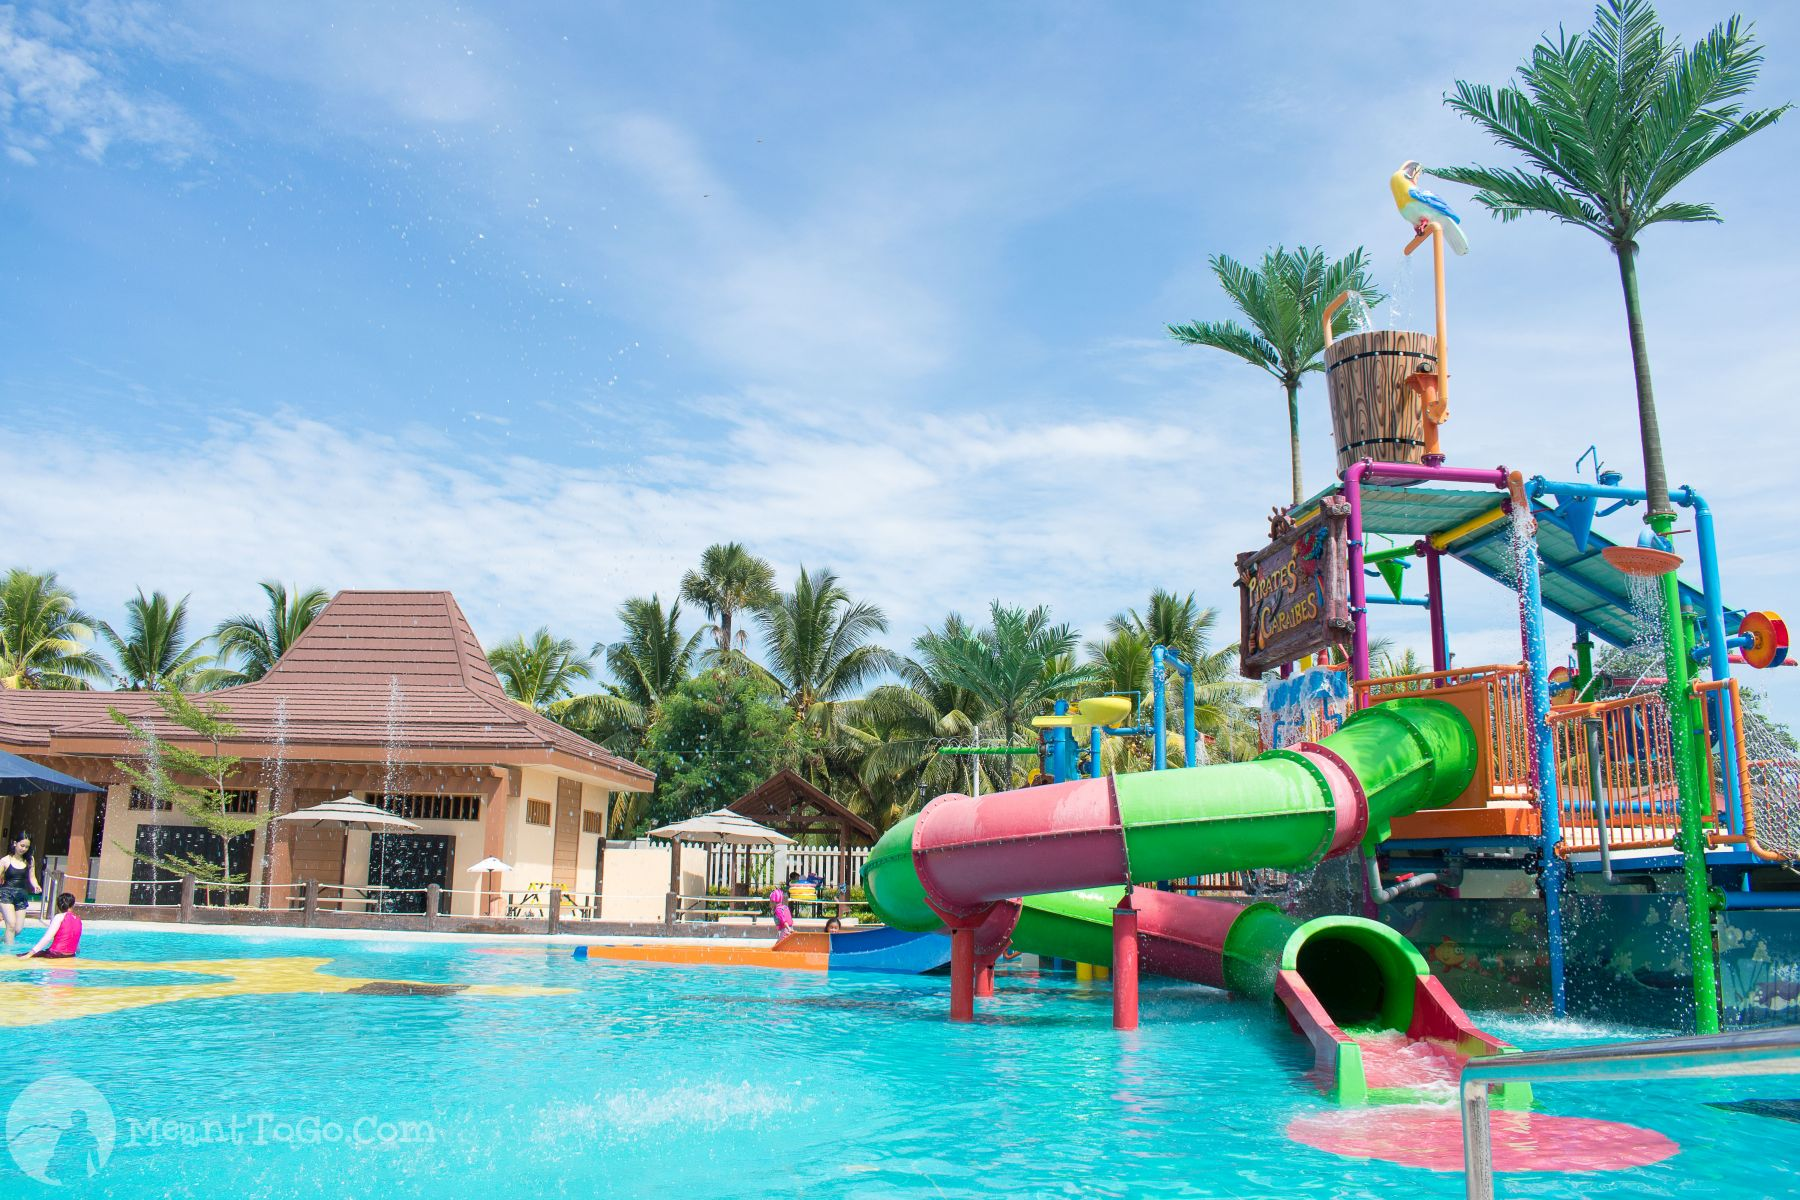 The Pirate Caraibes, Seven Seas Waterpark & Resort